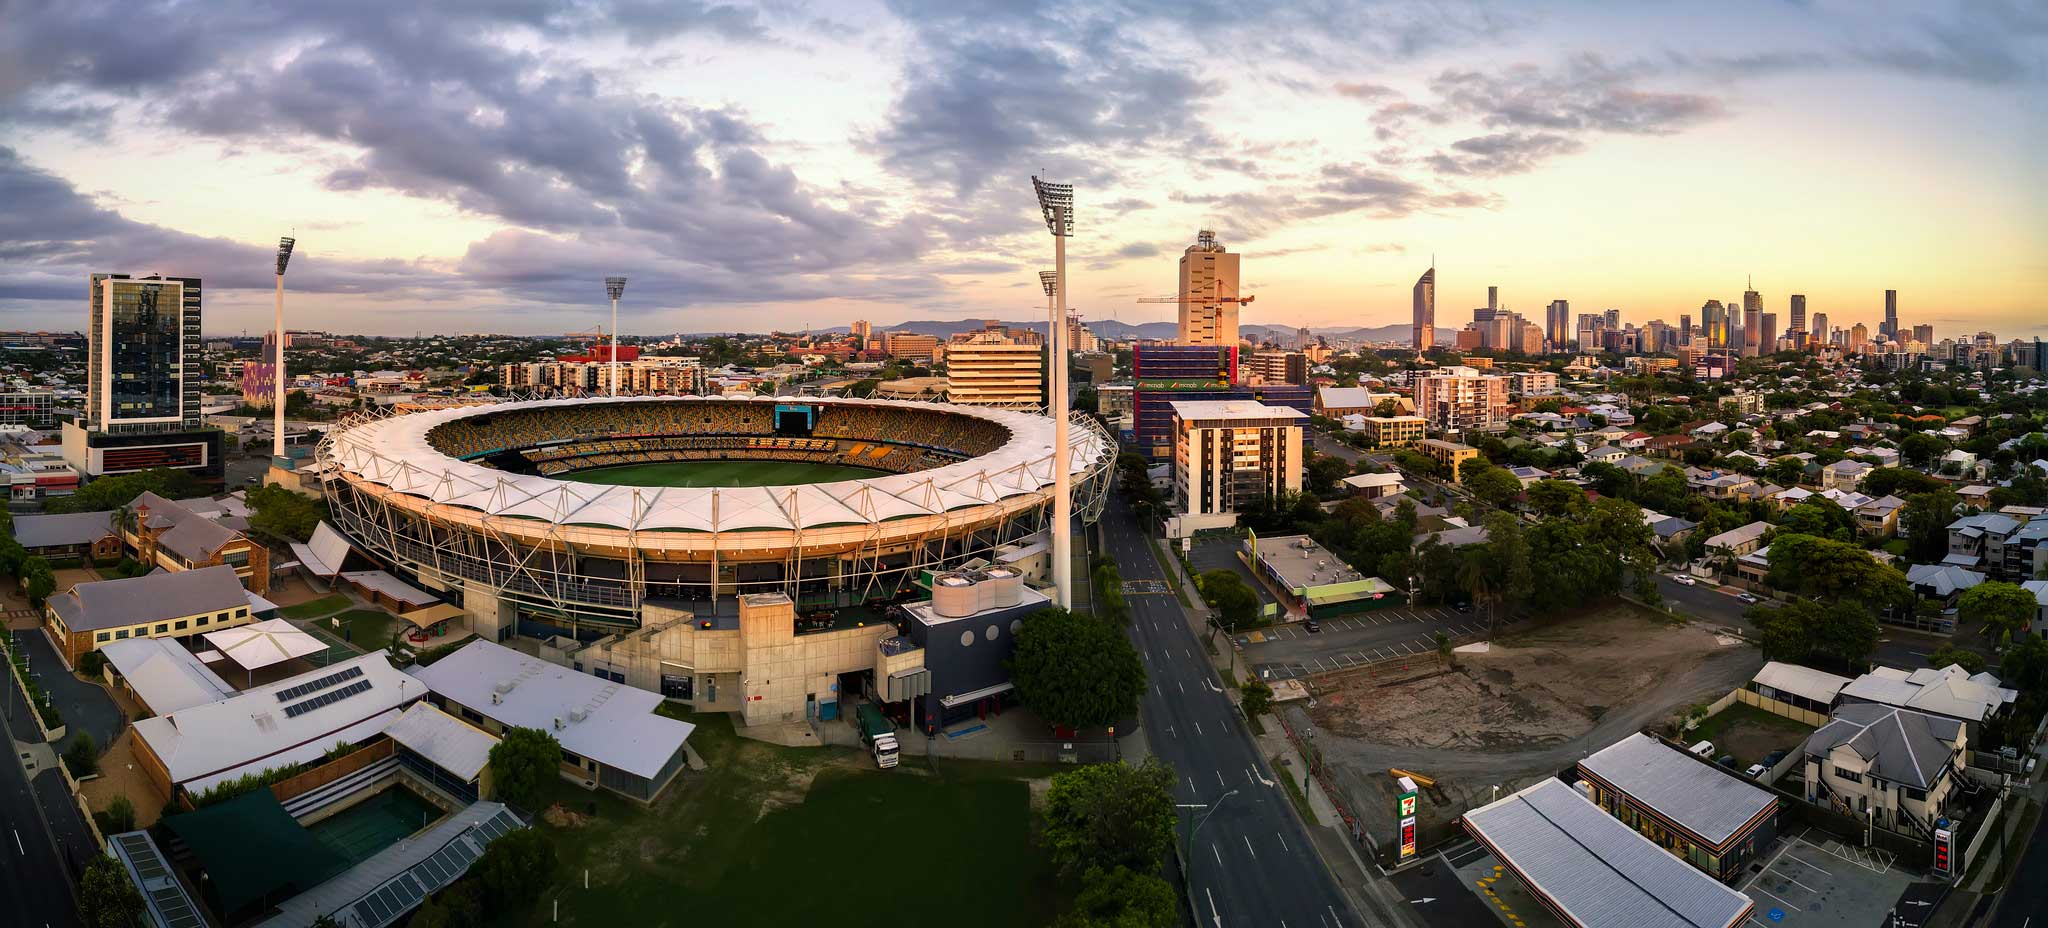 Drone Panorama Photography - Woolloongabba Stadium sunrise aerial drone photography Brisbane DroneAce